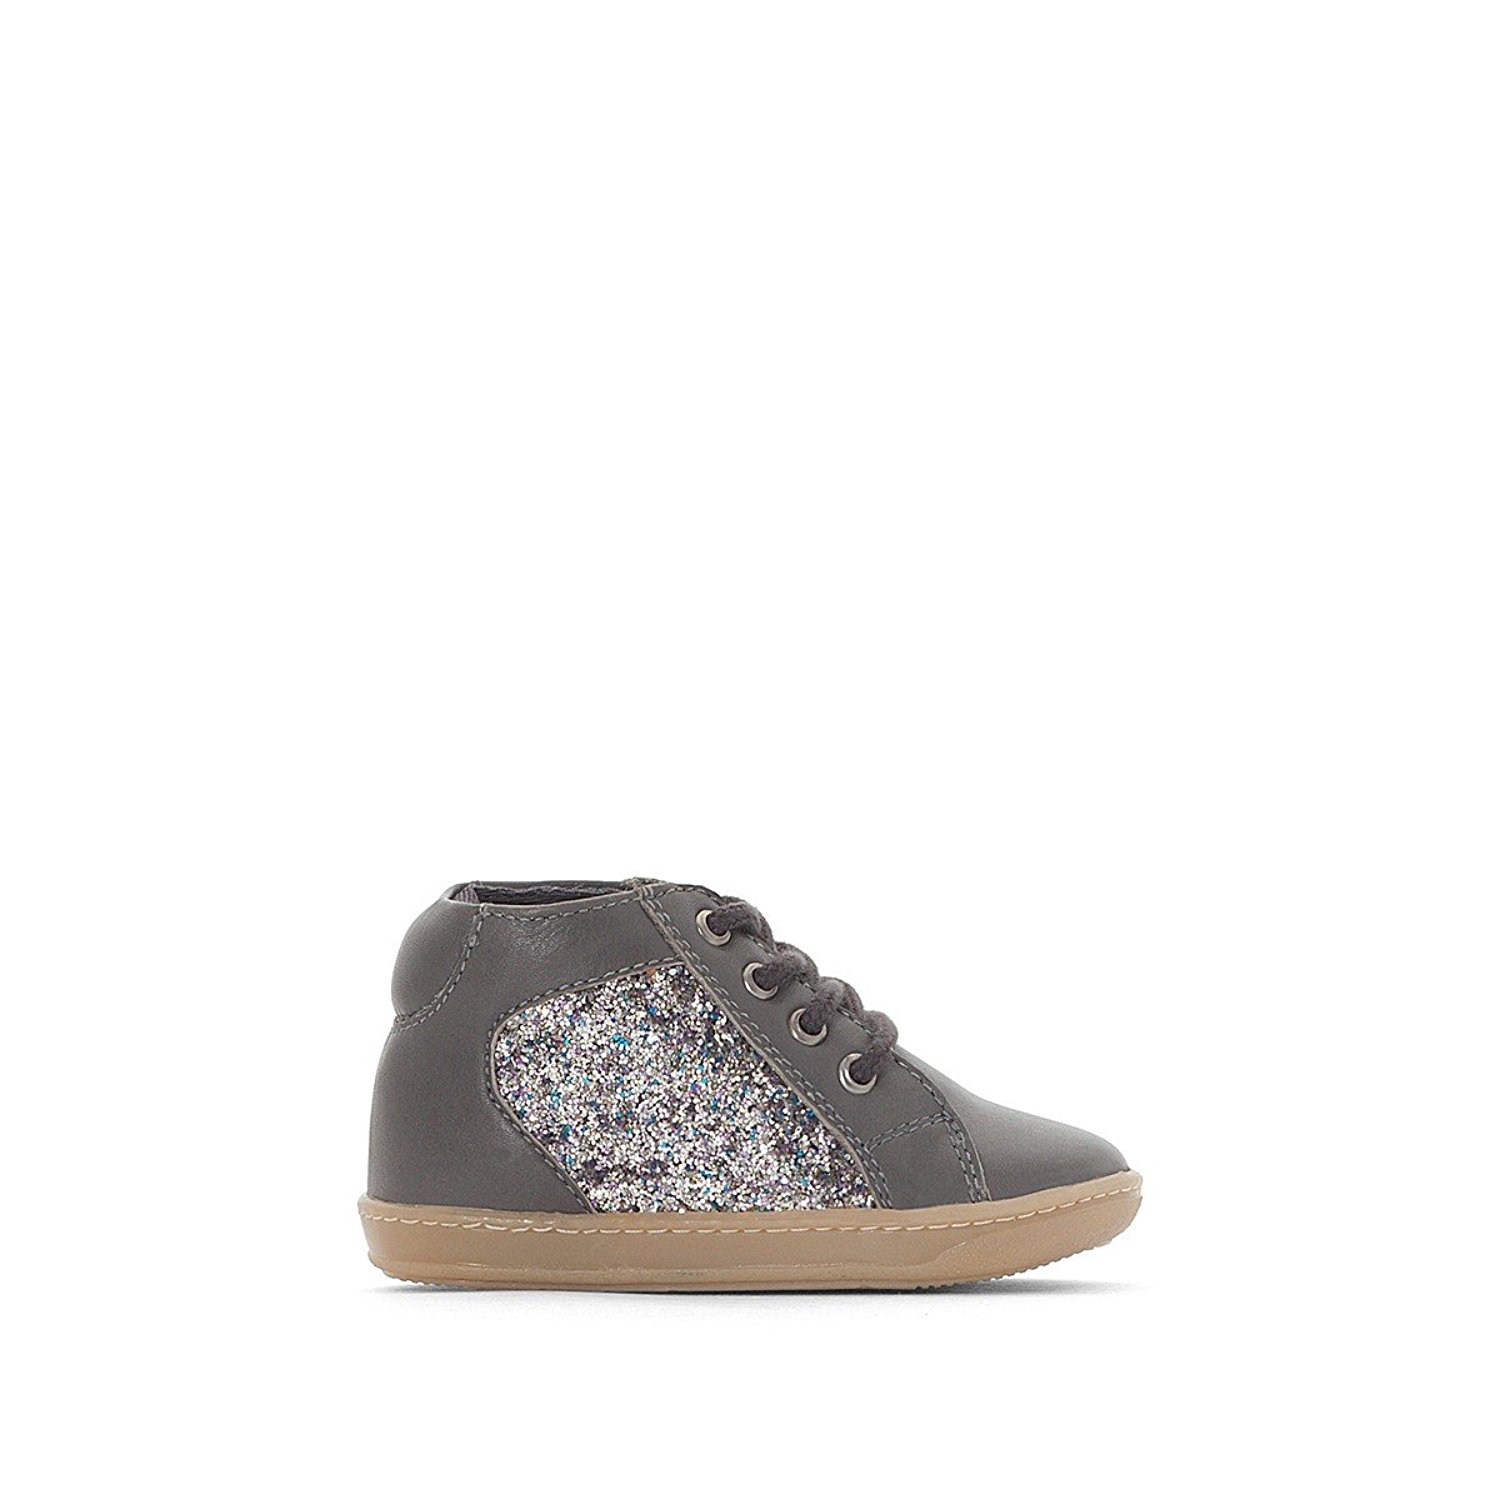 6b37993f5b08 Get Quotations · La Redoute Collections Big Girls Glitter Trainers, 19-25